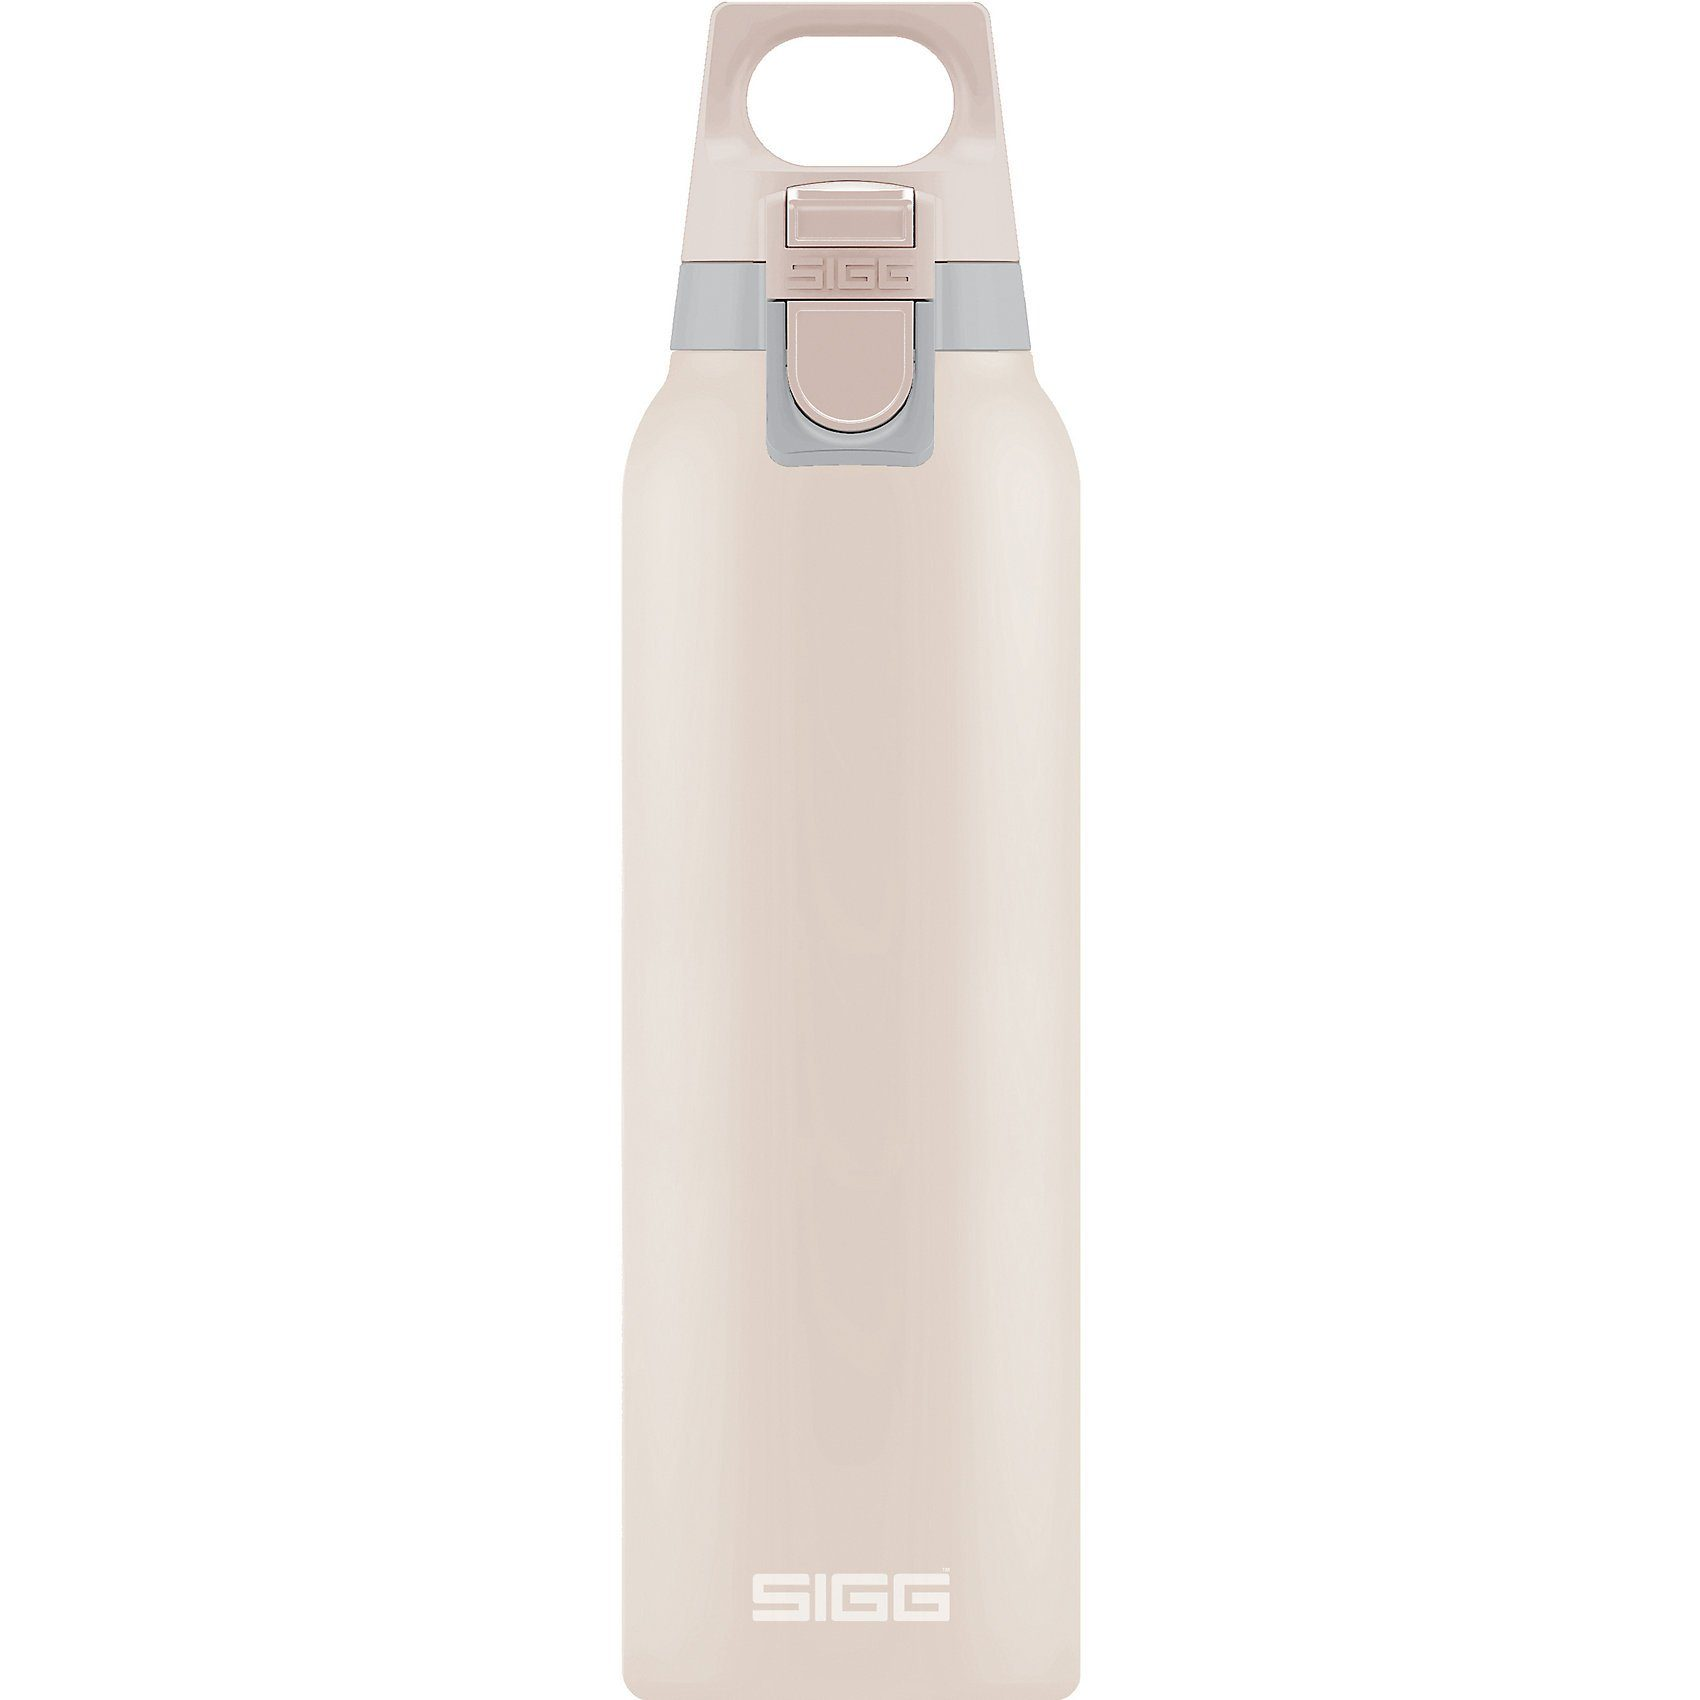 Sigg Thermoflasche Hot & Cold ONE Blush, 500ml